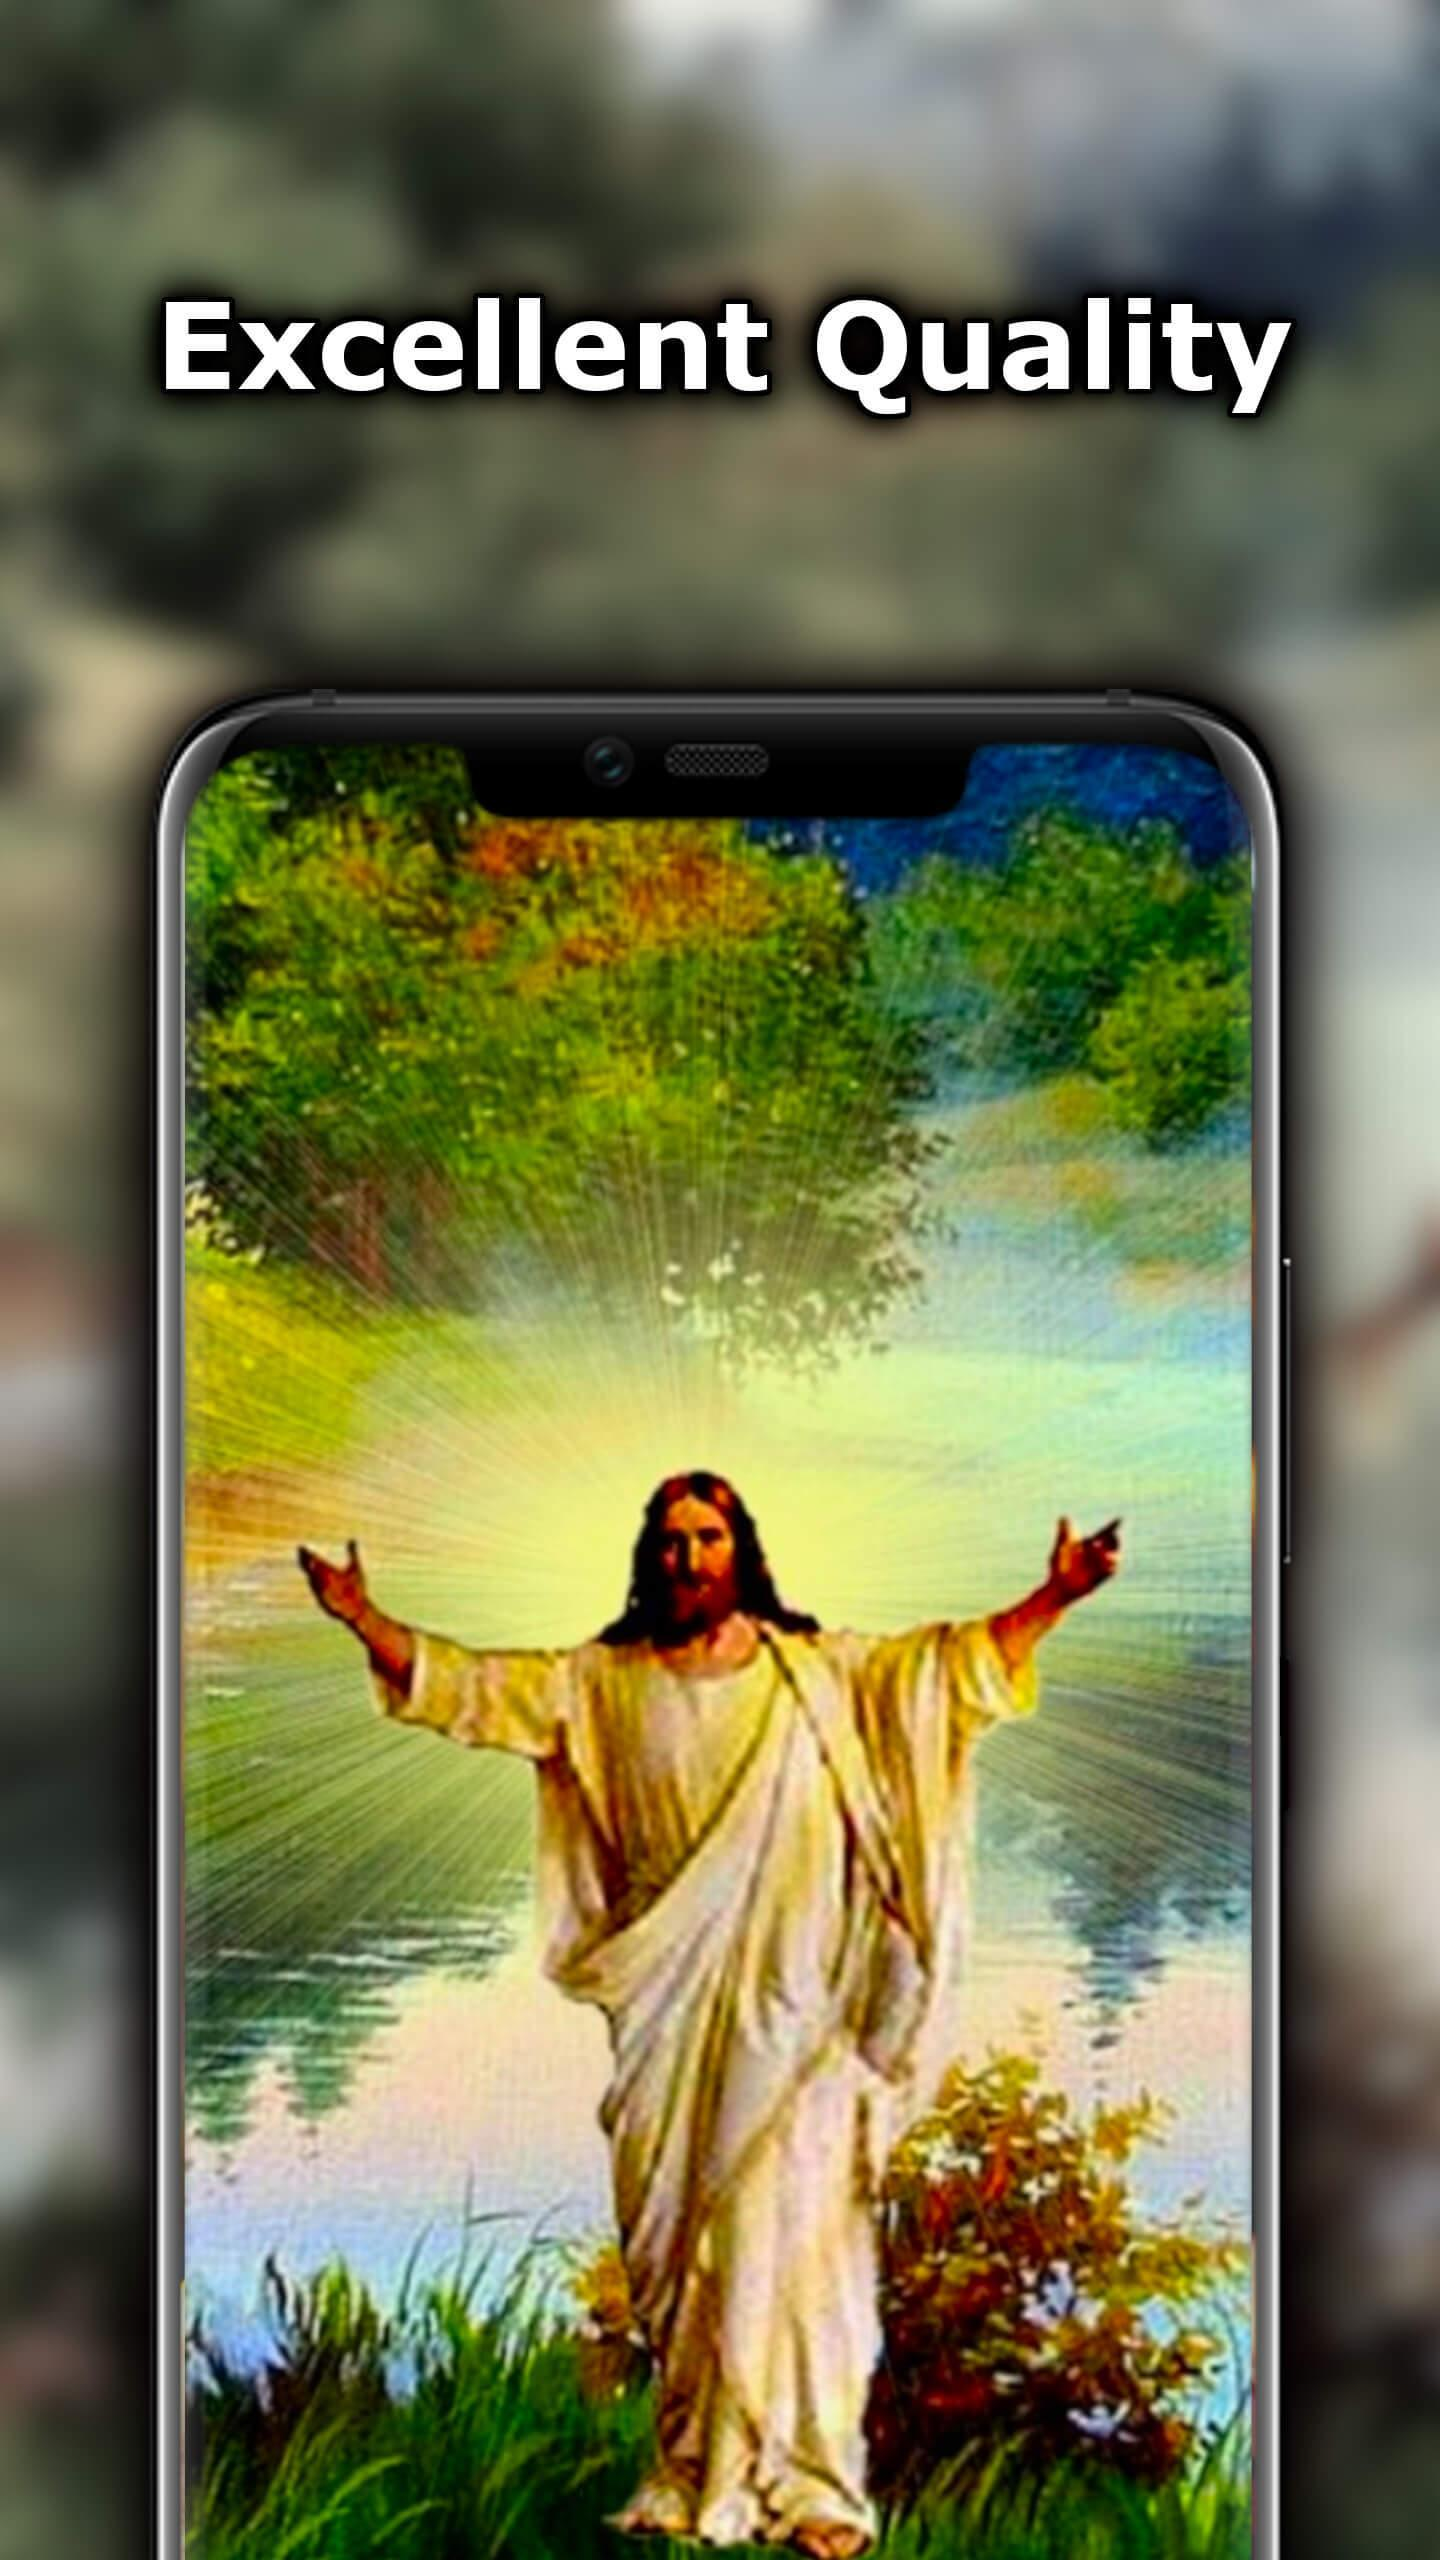 yesus kristus wallpaper for android apk download yesus kristus wallpaper for android